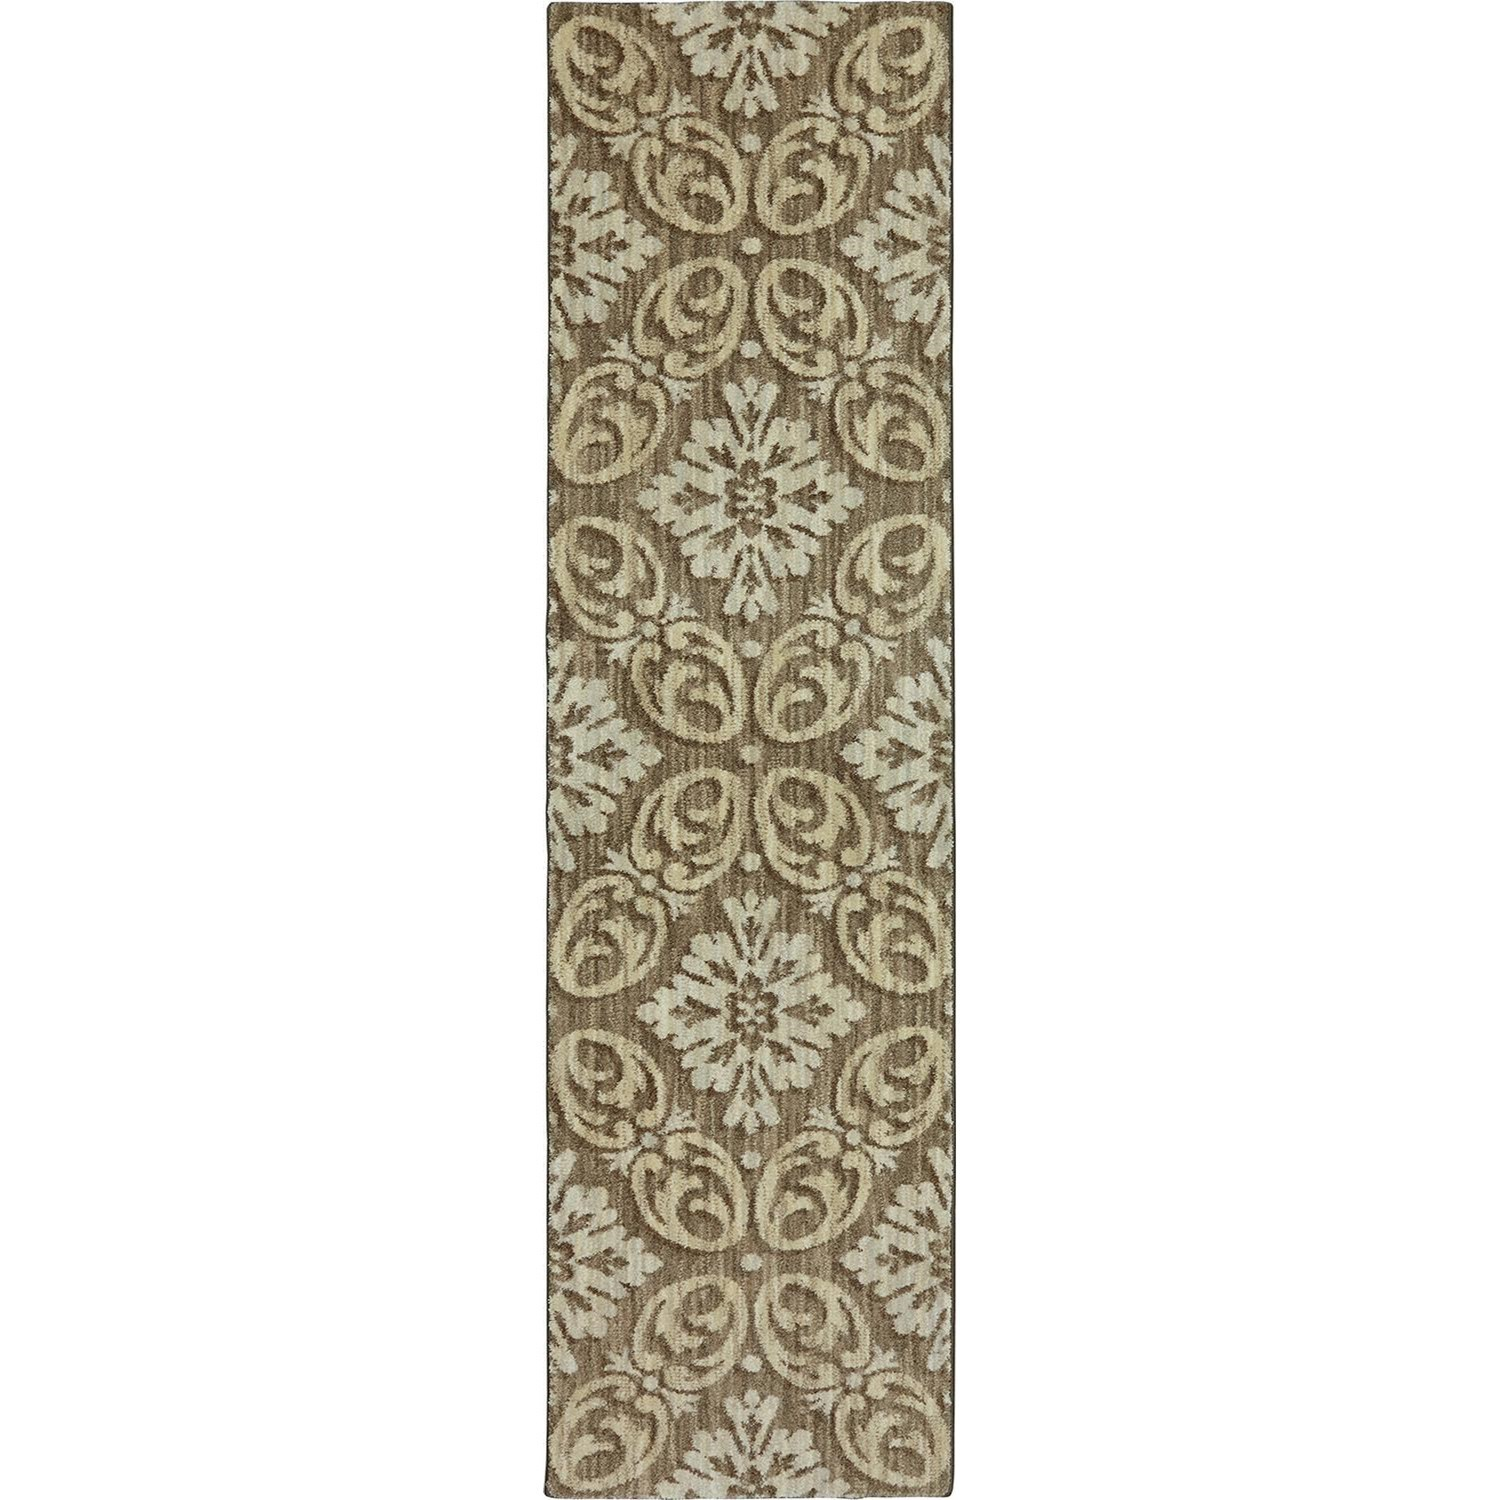 Karastan Rugs Euphoria 2'1x7'10 Findon Brown Rug Runner - Item Number: 90271 80062 025094